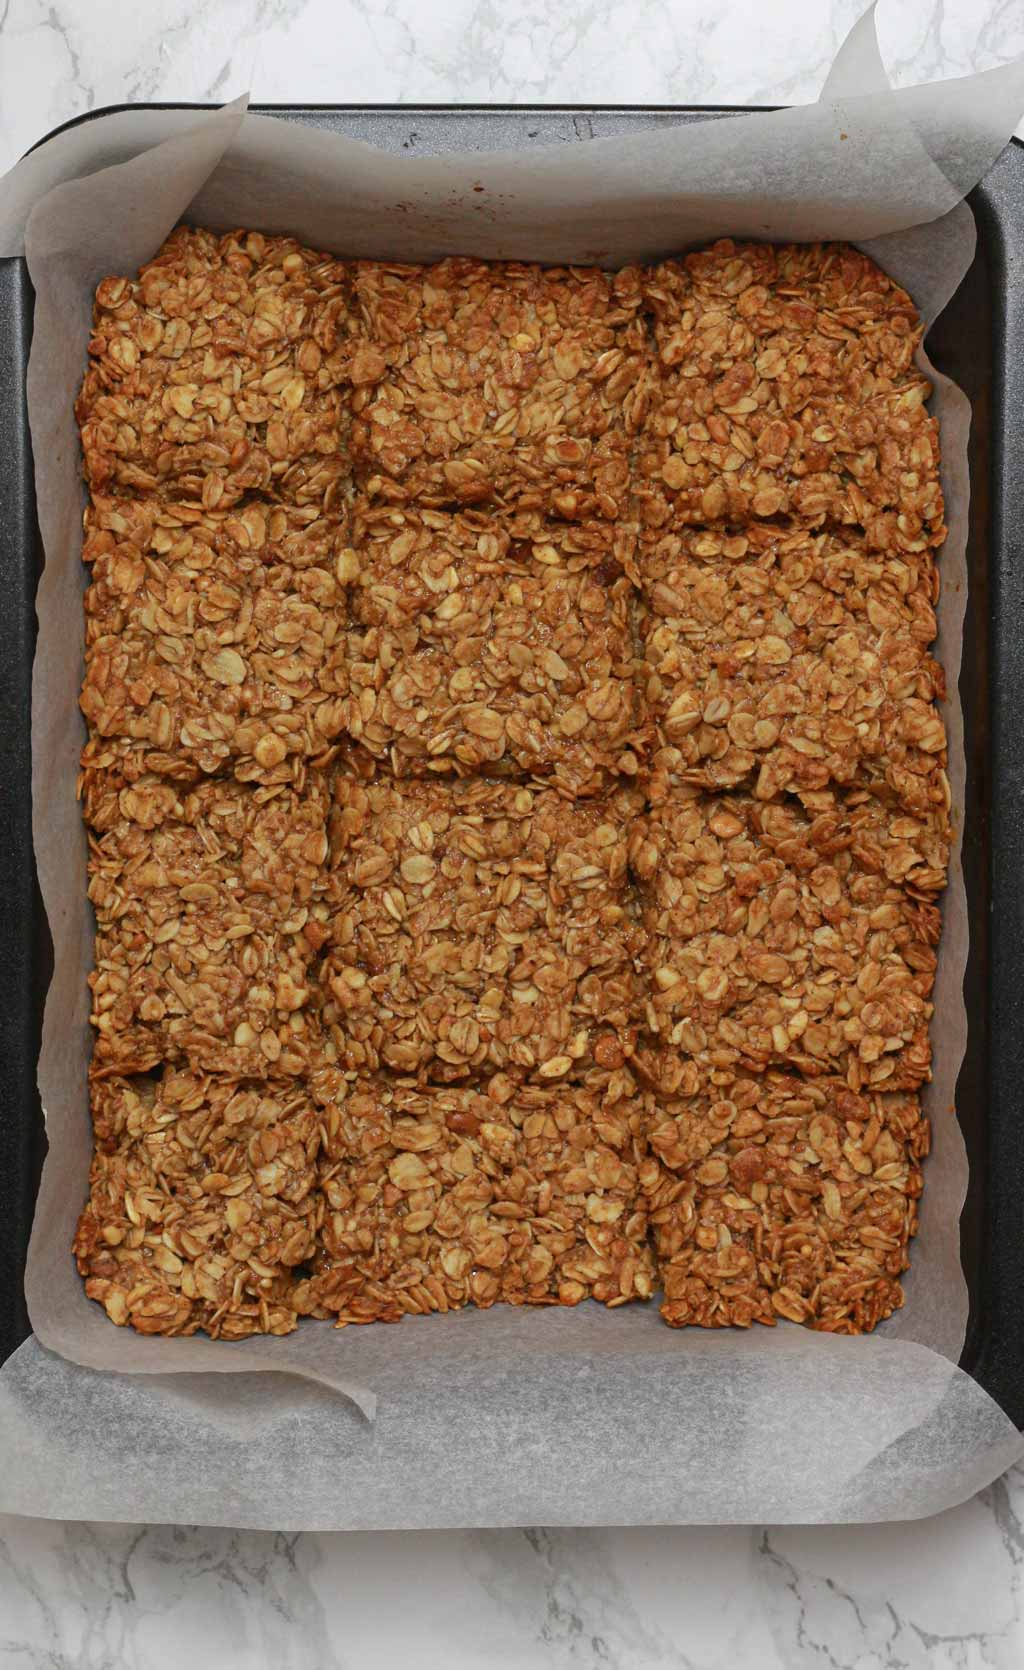 Baked Flapjacks With Score Lines In Them While Still In The Tin